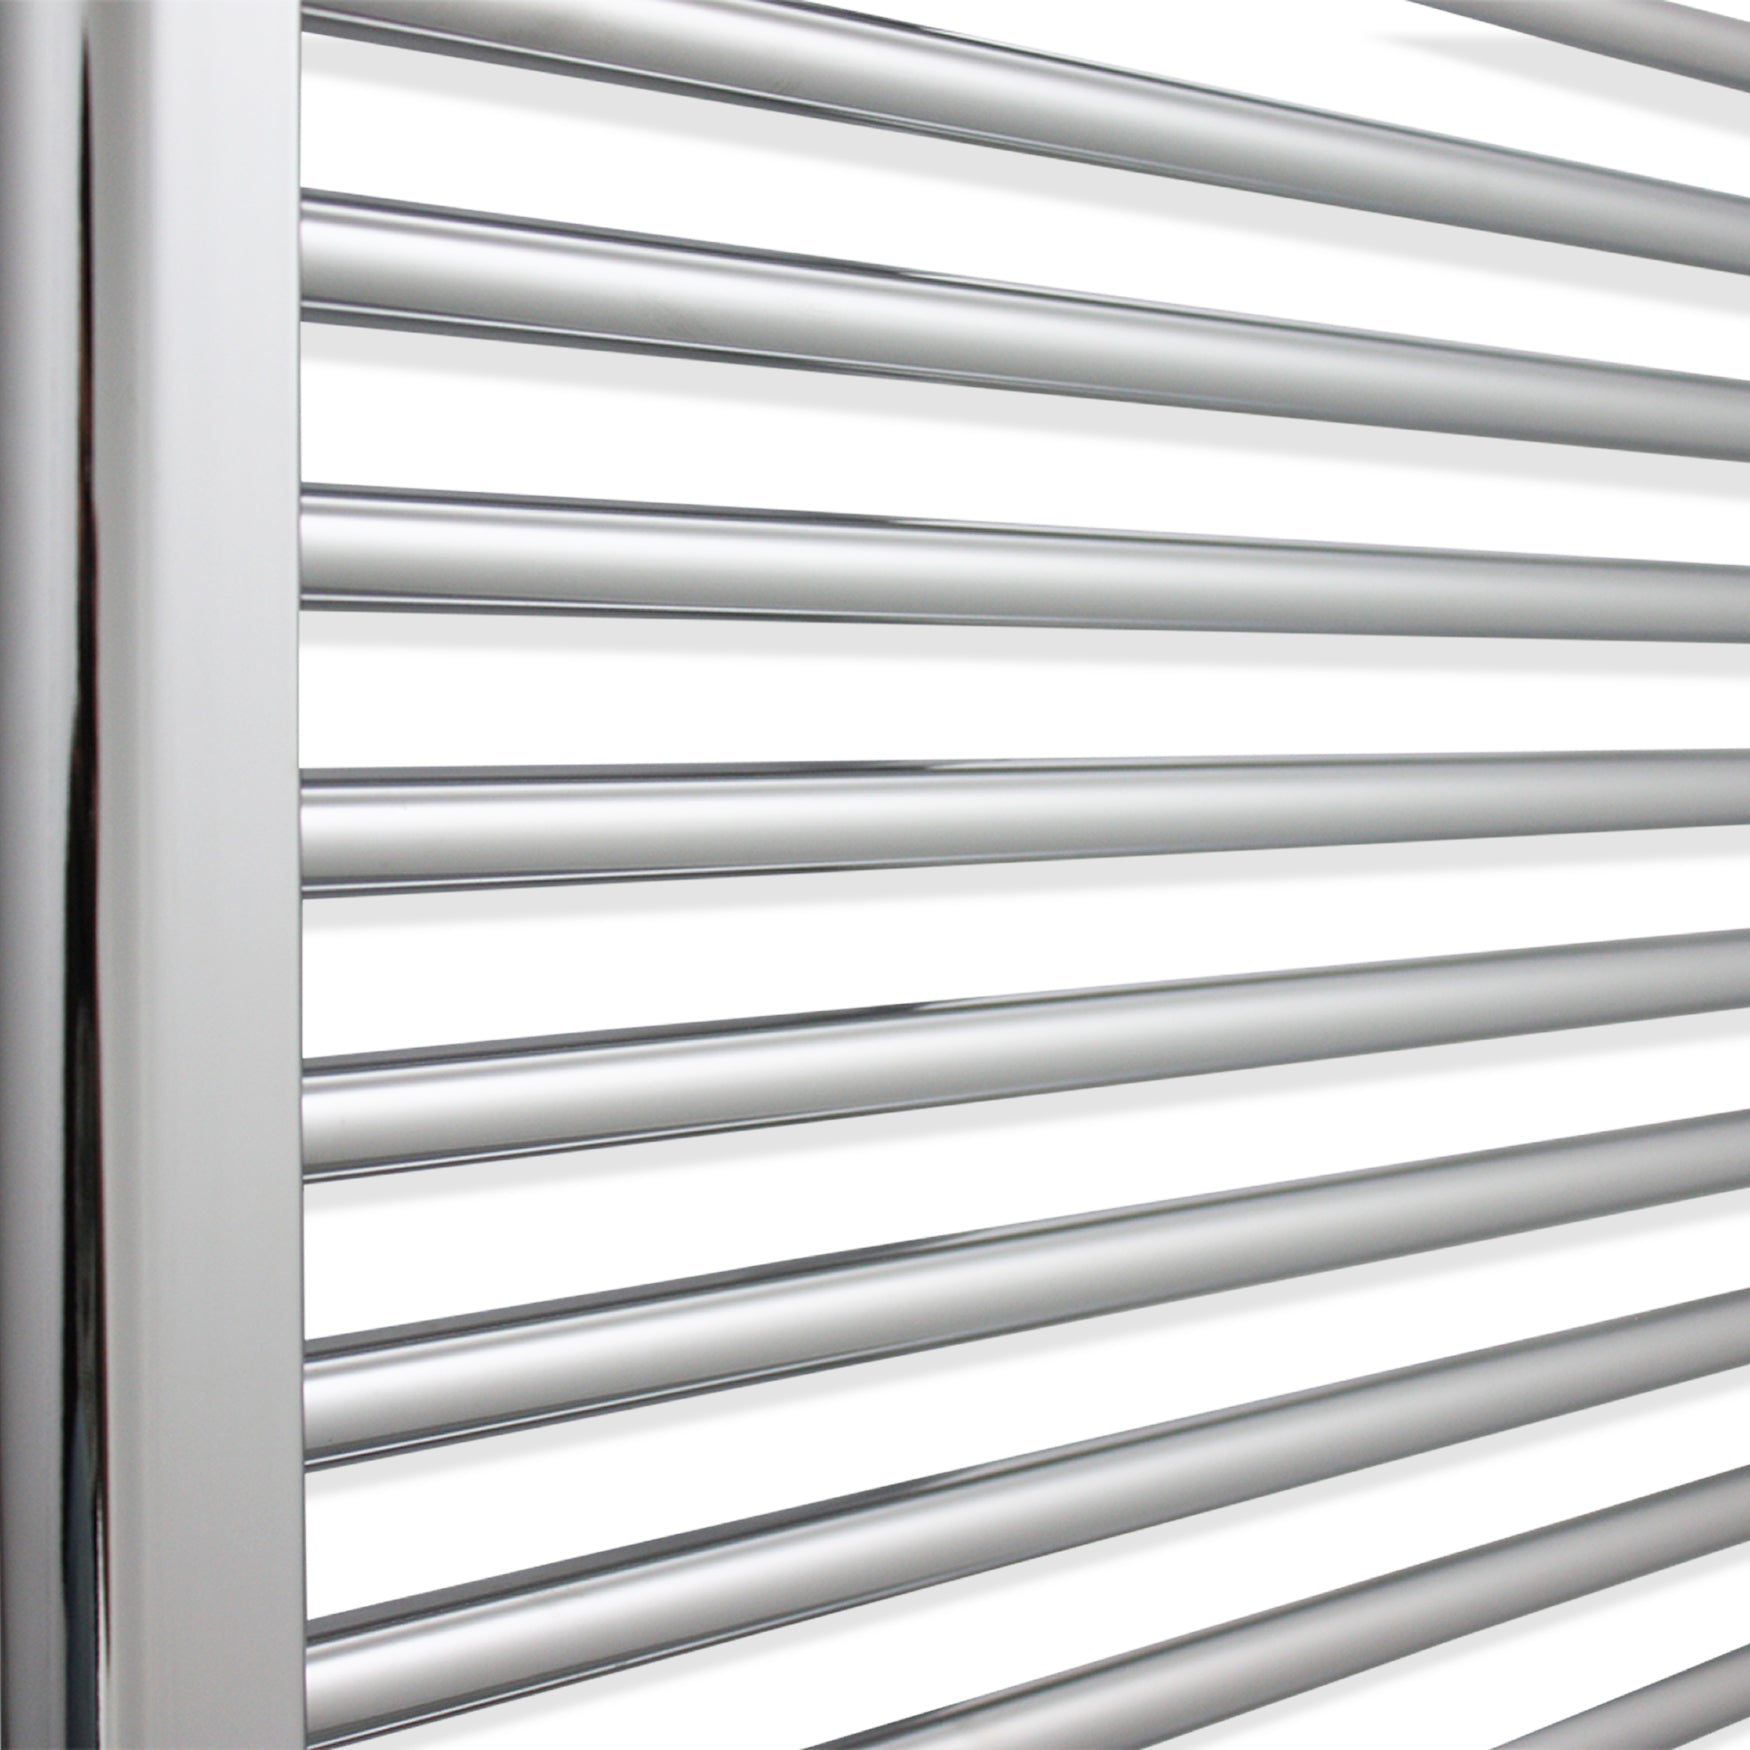 400mm Wide 1600mm High Straight Chrome Heated Towel Rail Radiator HTR